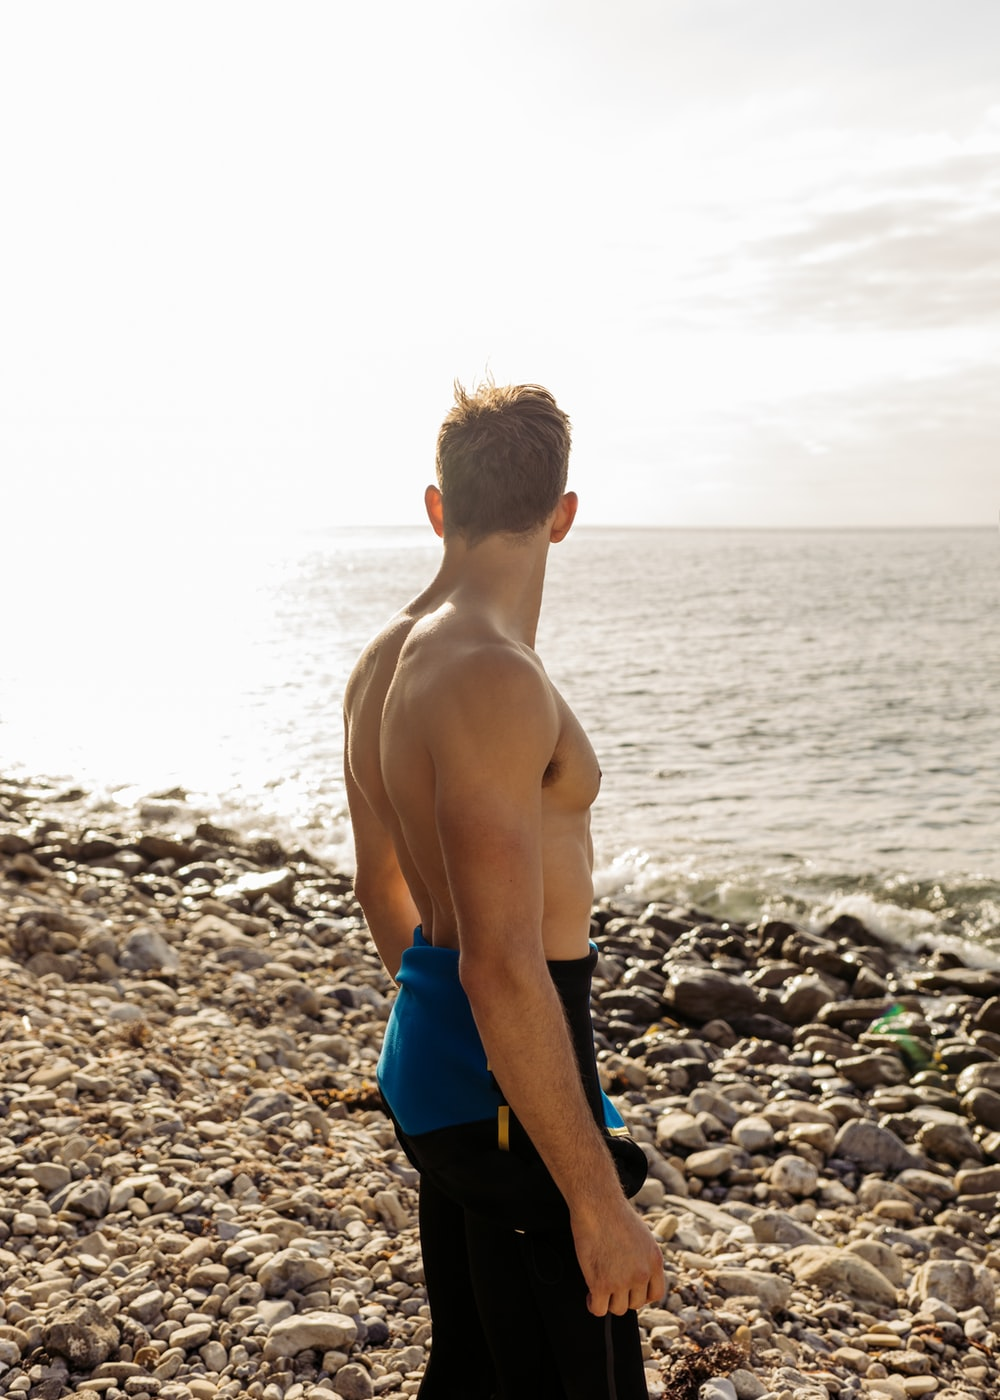 man in blue and black bottoms standing on beach